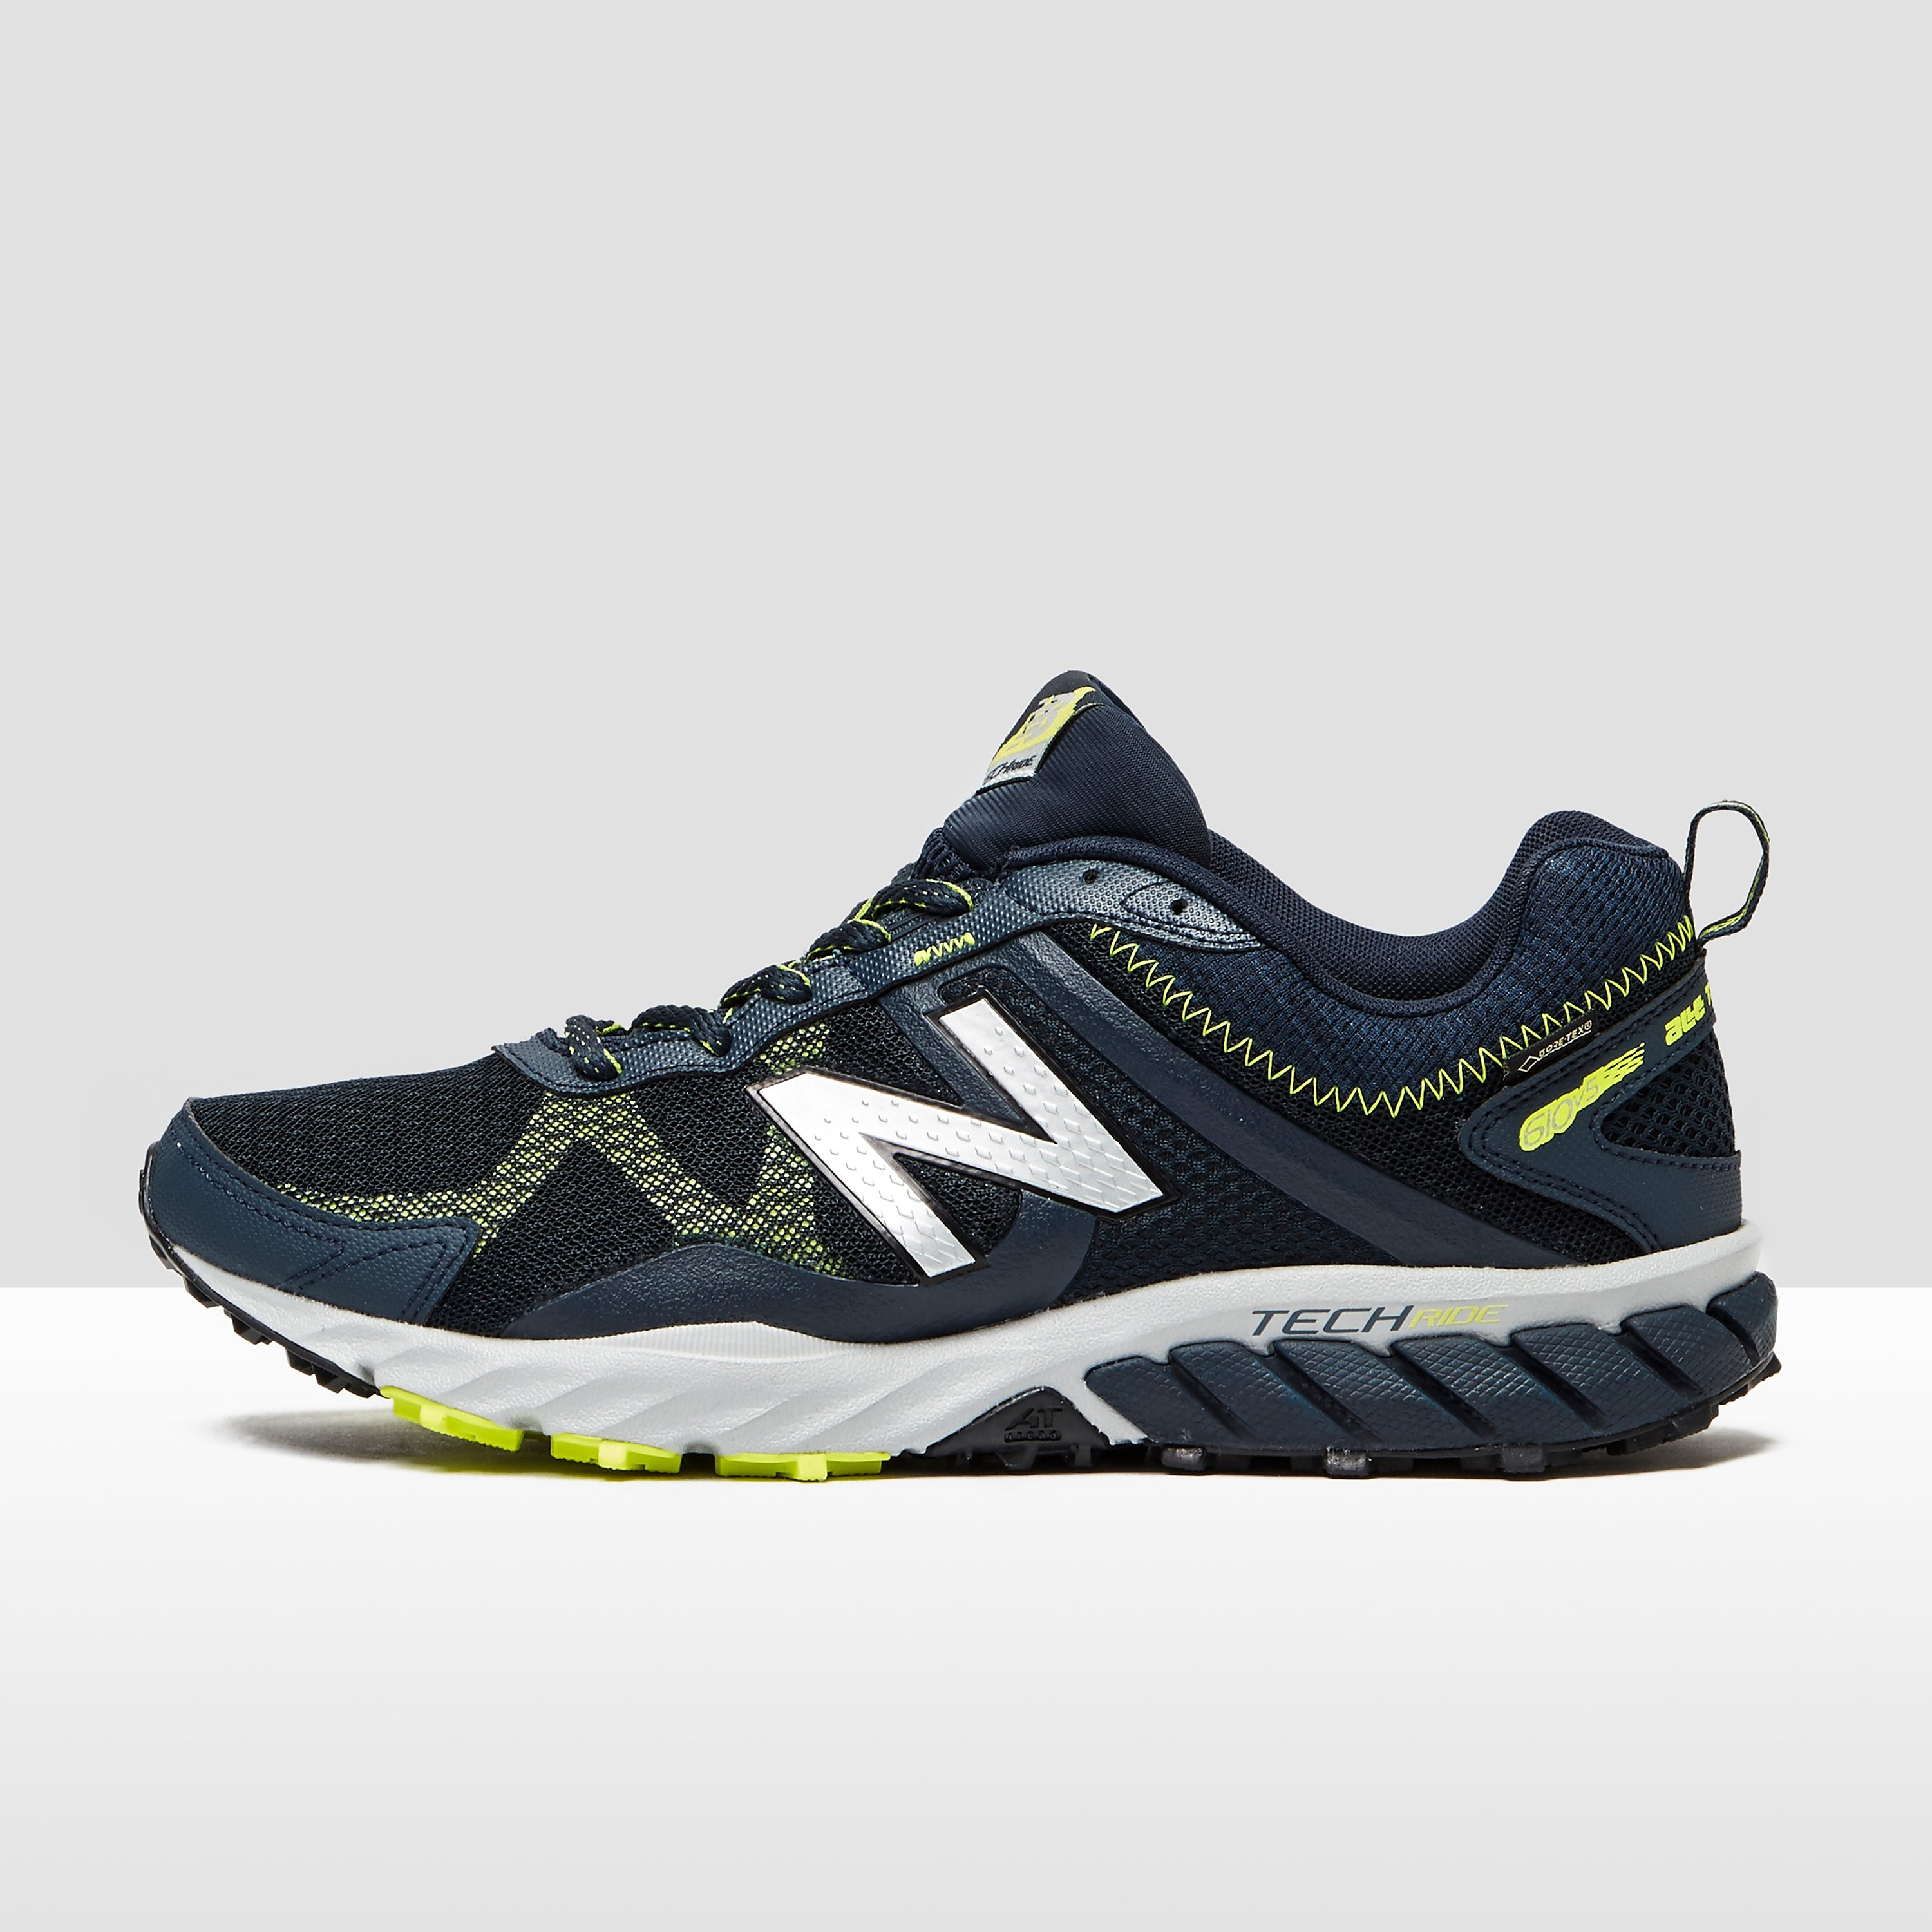 New Balance 610 Men's Trail Running Shoes